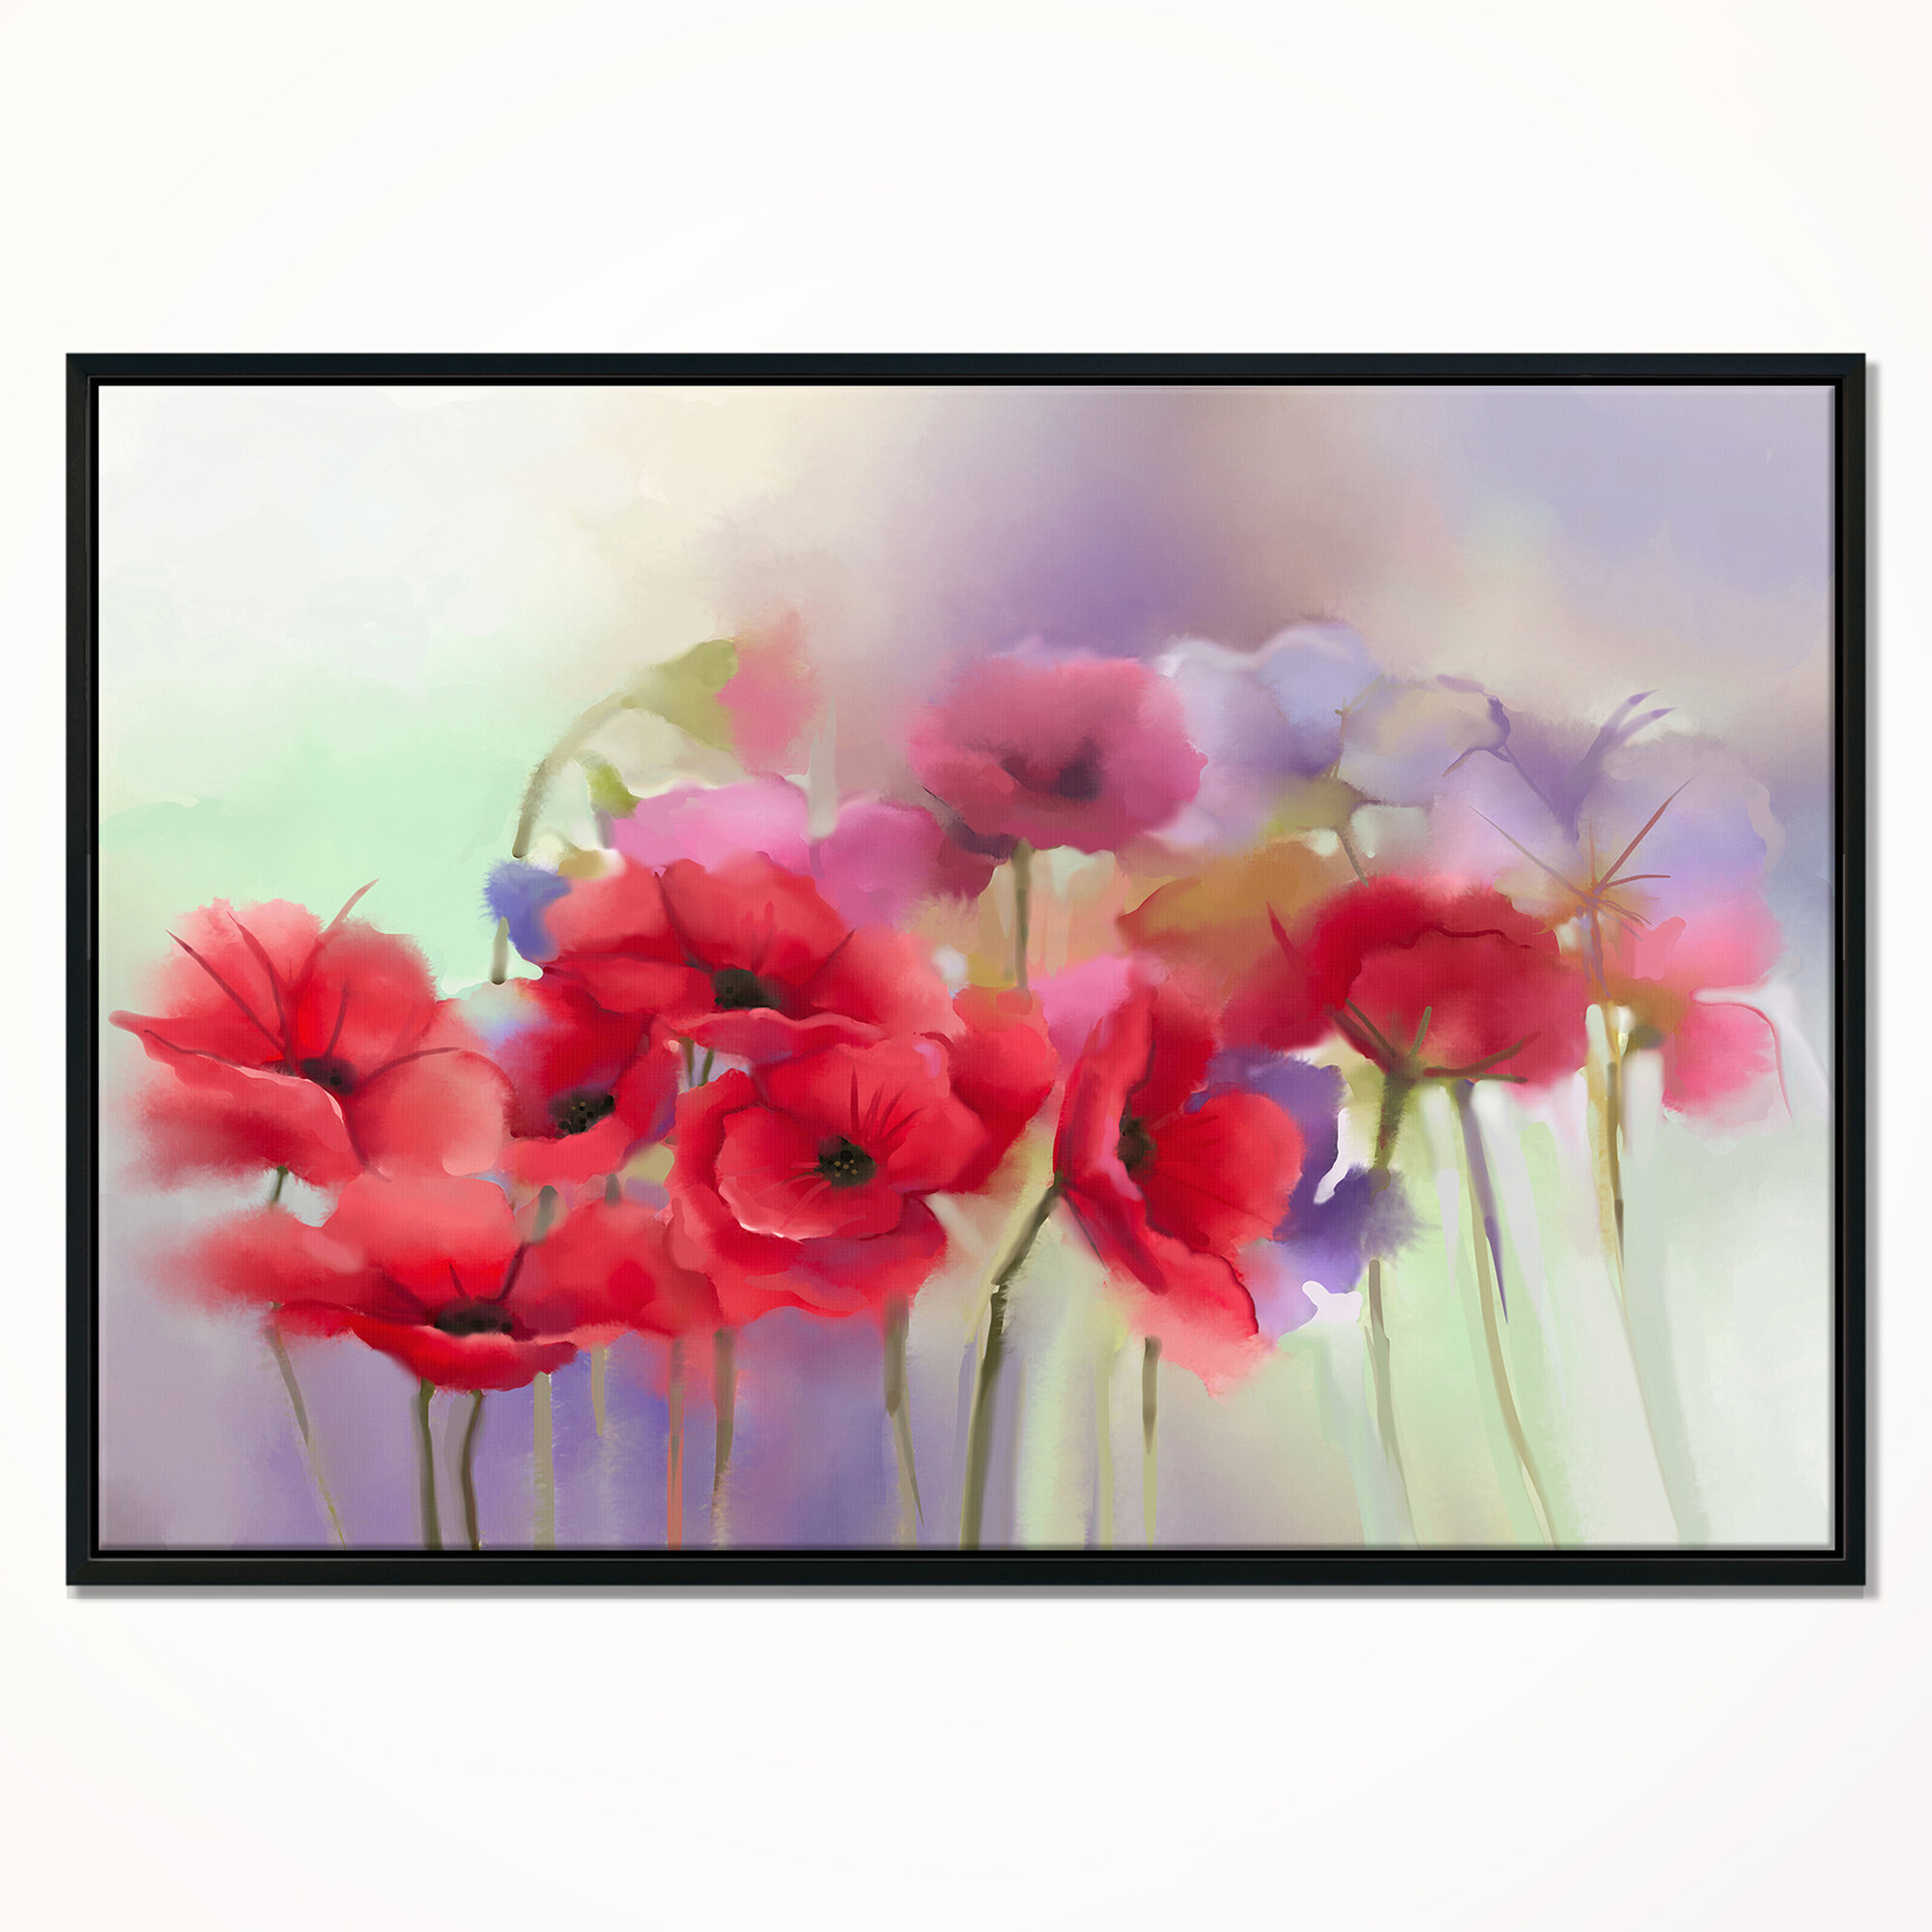 East Urban Home Red Poppy Flowers Painting Framed Watercolor